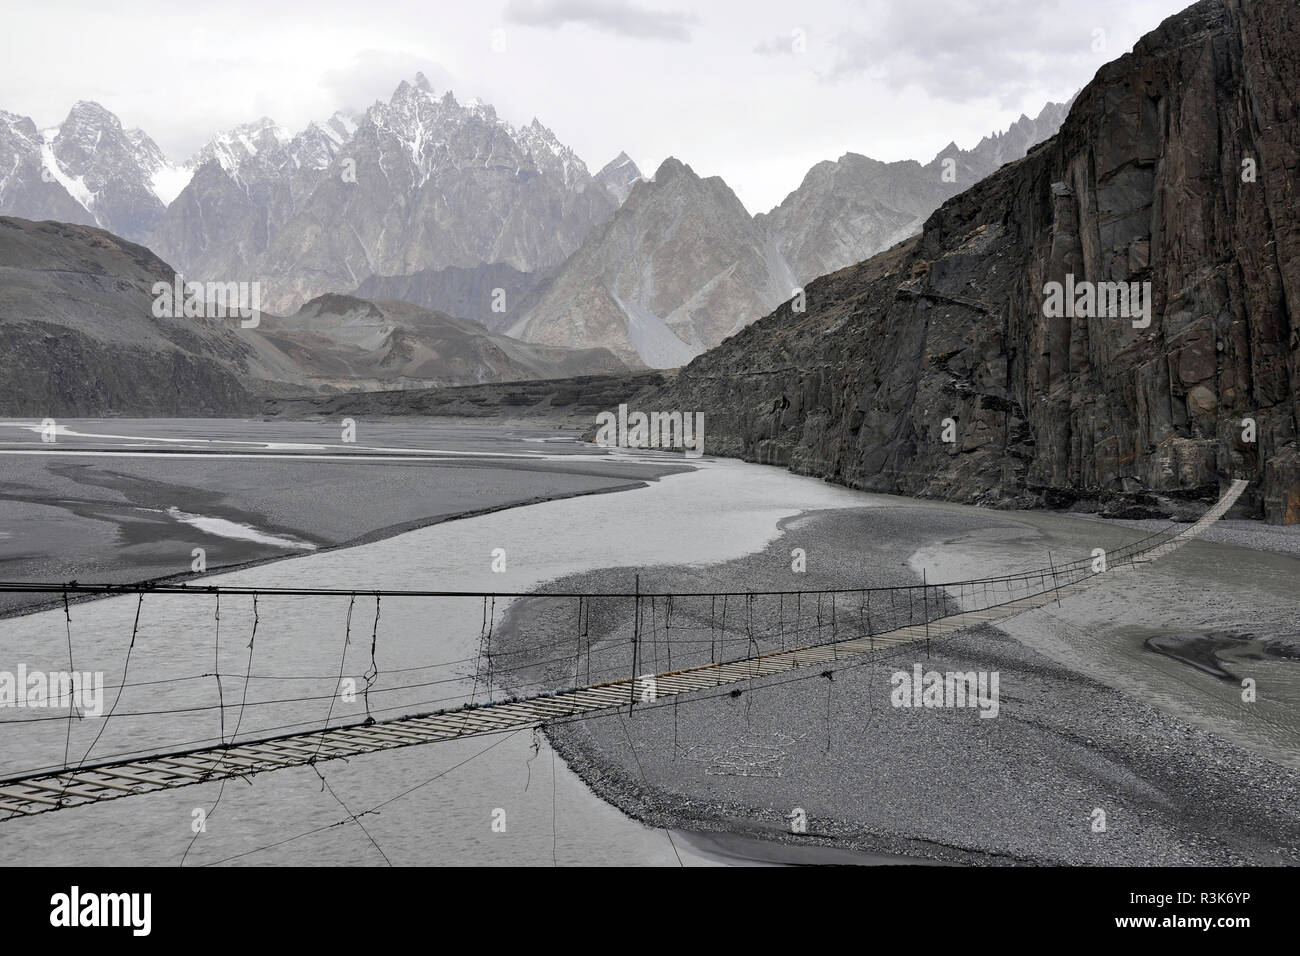 Pakistan, Hunza valley, landscape - Stock Image